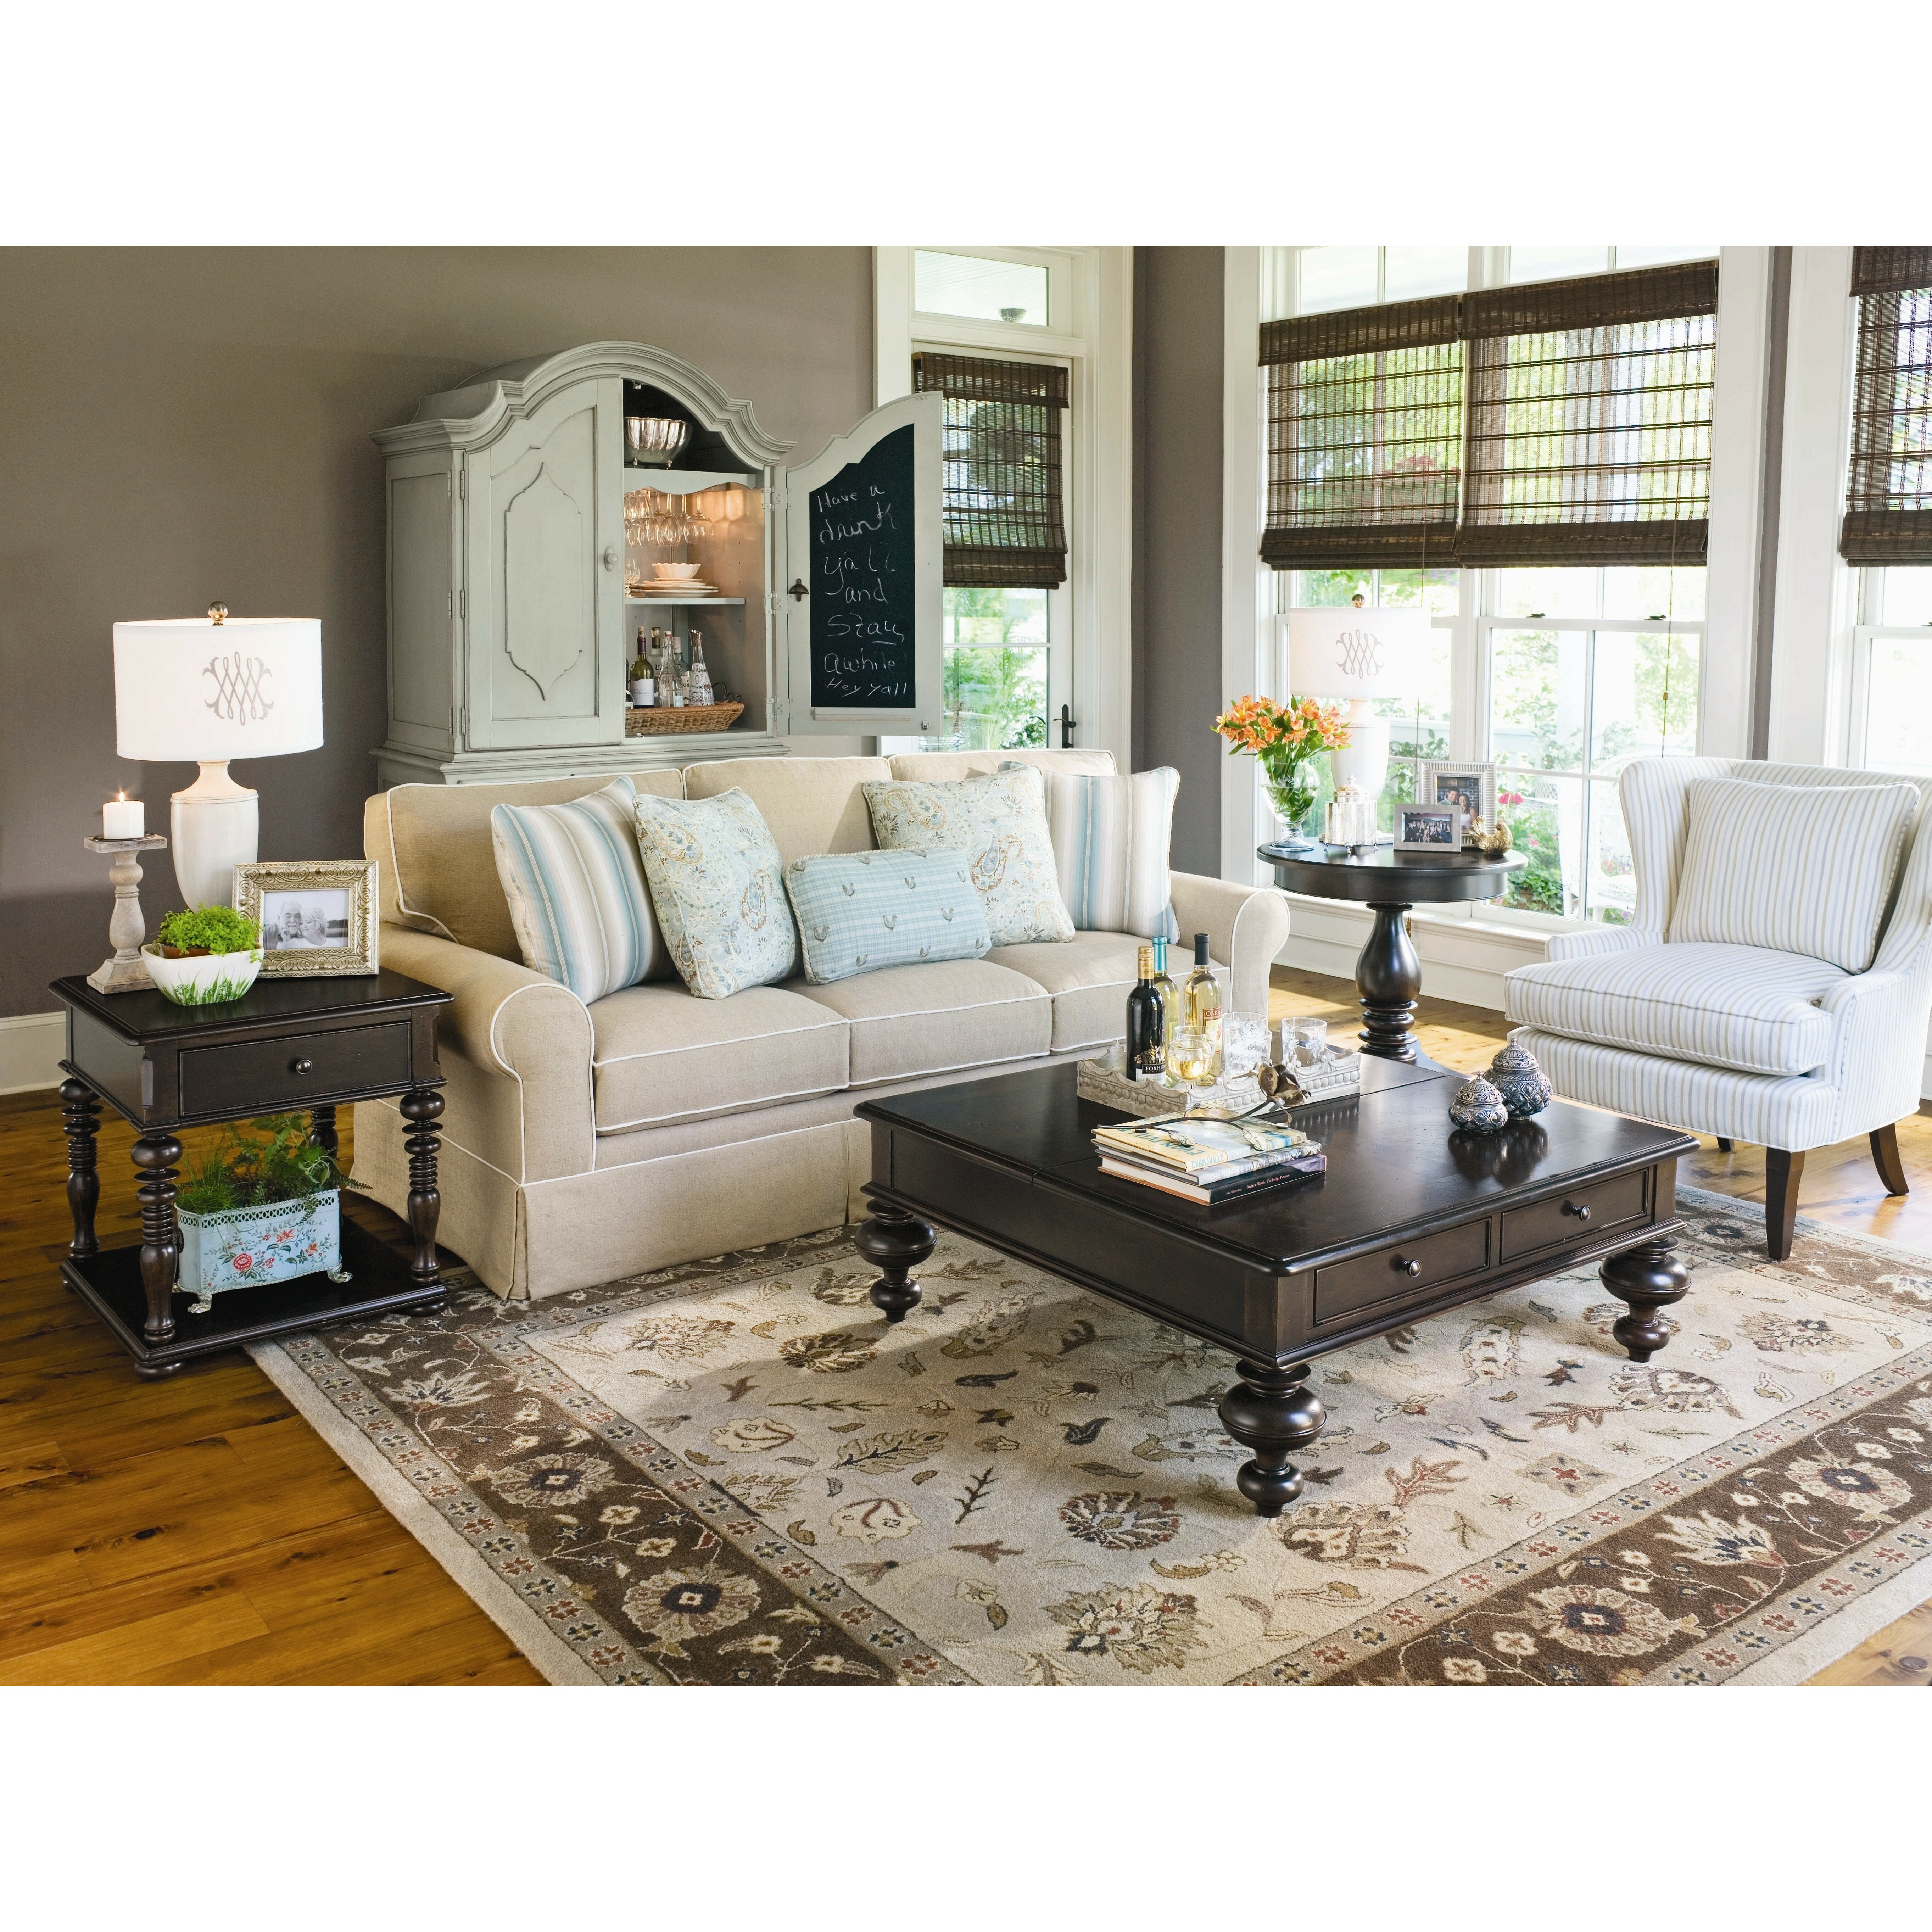 Paula Deen Bedroom Furniture Collection Wildon Home Ar Paula Deen Home Put Your Feet Up Coffee Table With